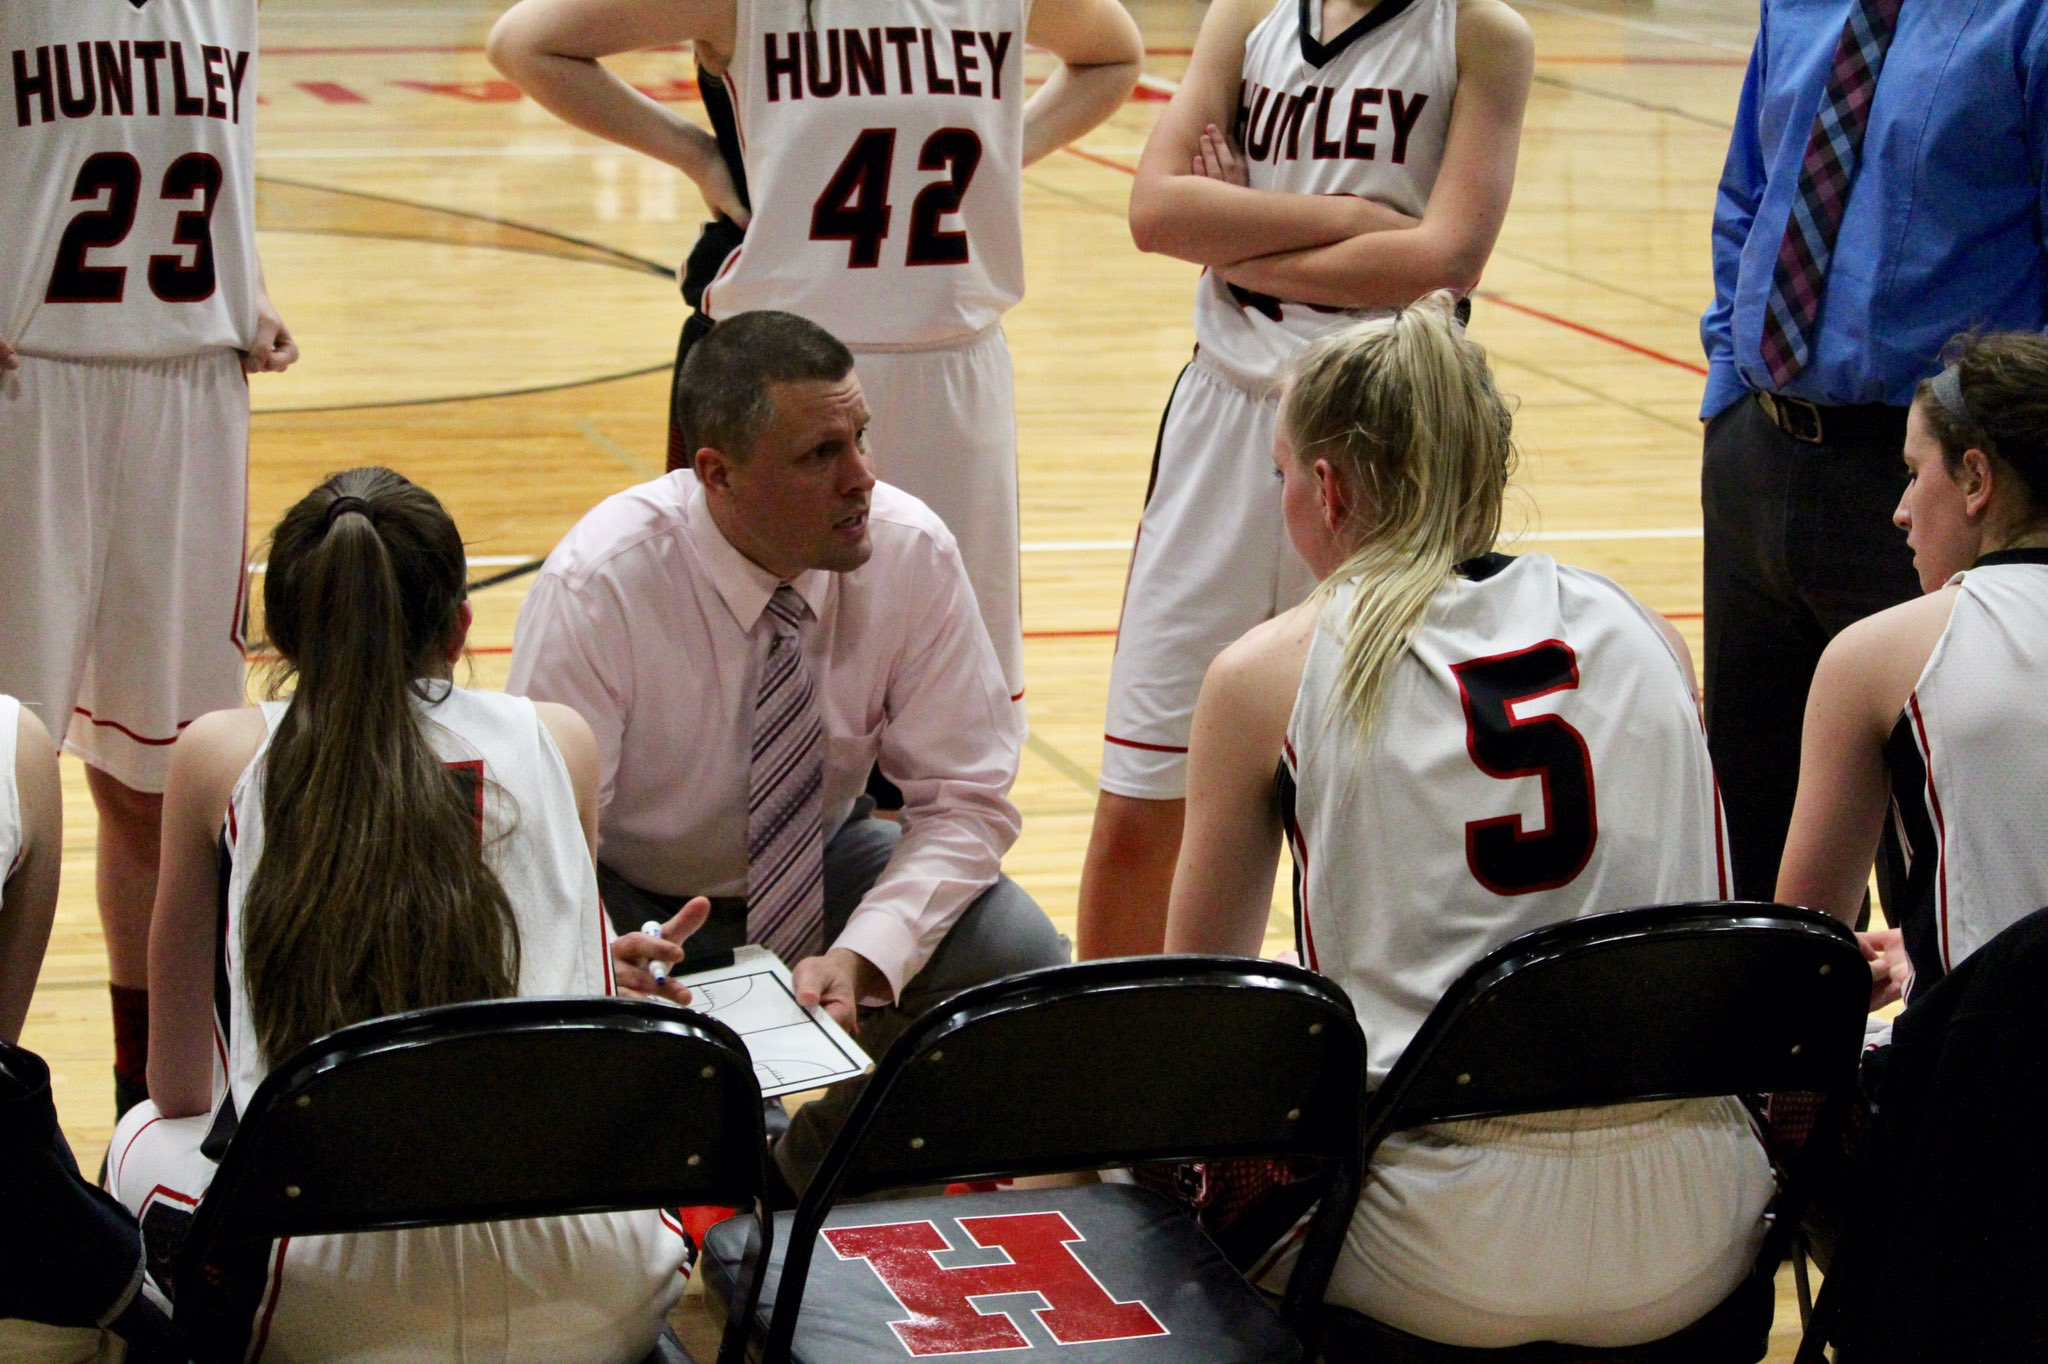 Coach Steve Raethz talks with his team during a timeout. (courtesy of E. Pilat)